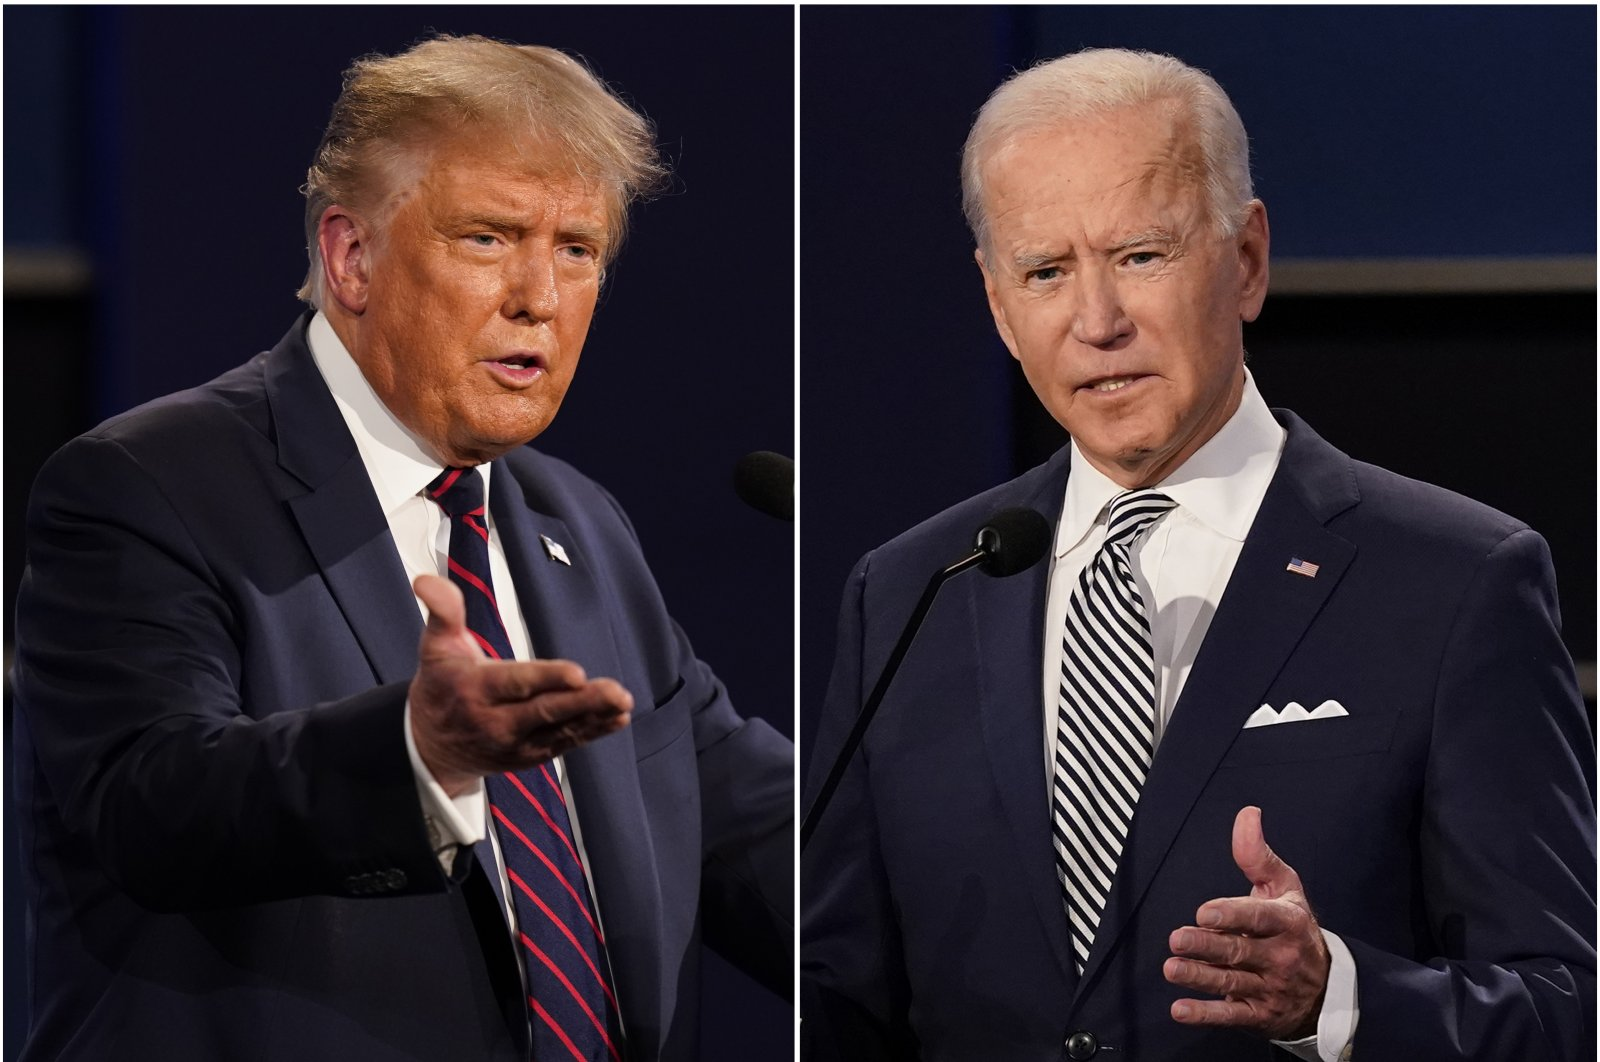 This combination of Sept. 29, 2020, file photos shows U.S. President Donald Trump, left, and former Vice President Joe Biden during the first presidential debate at Case Western University and Cleveland Clinic, in Cleveland, Ohio. (AP Photo)